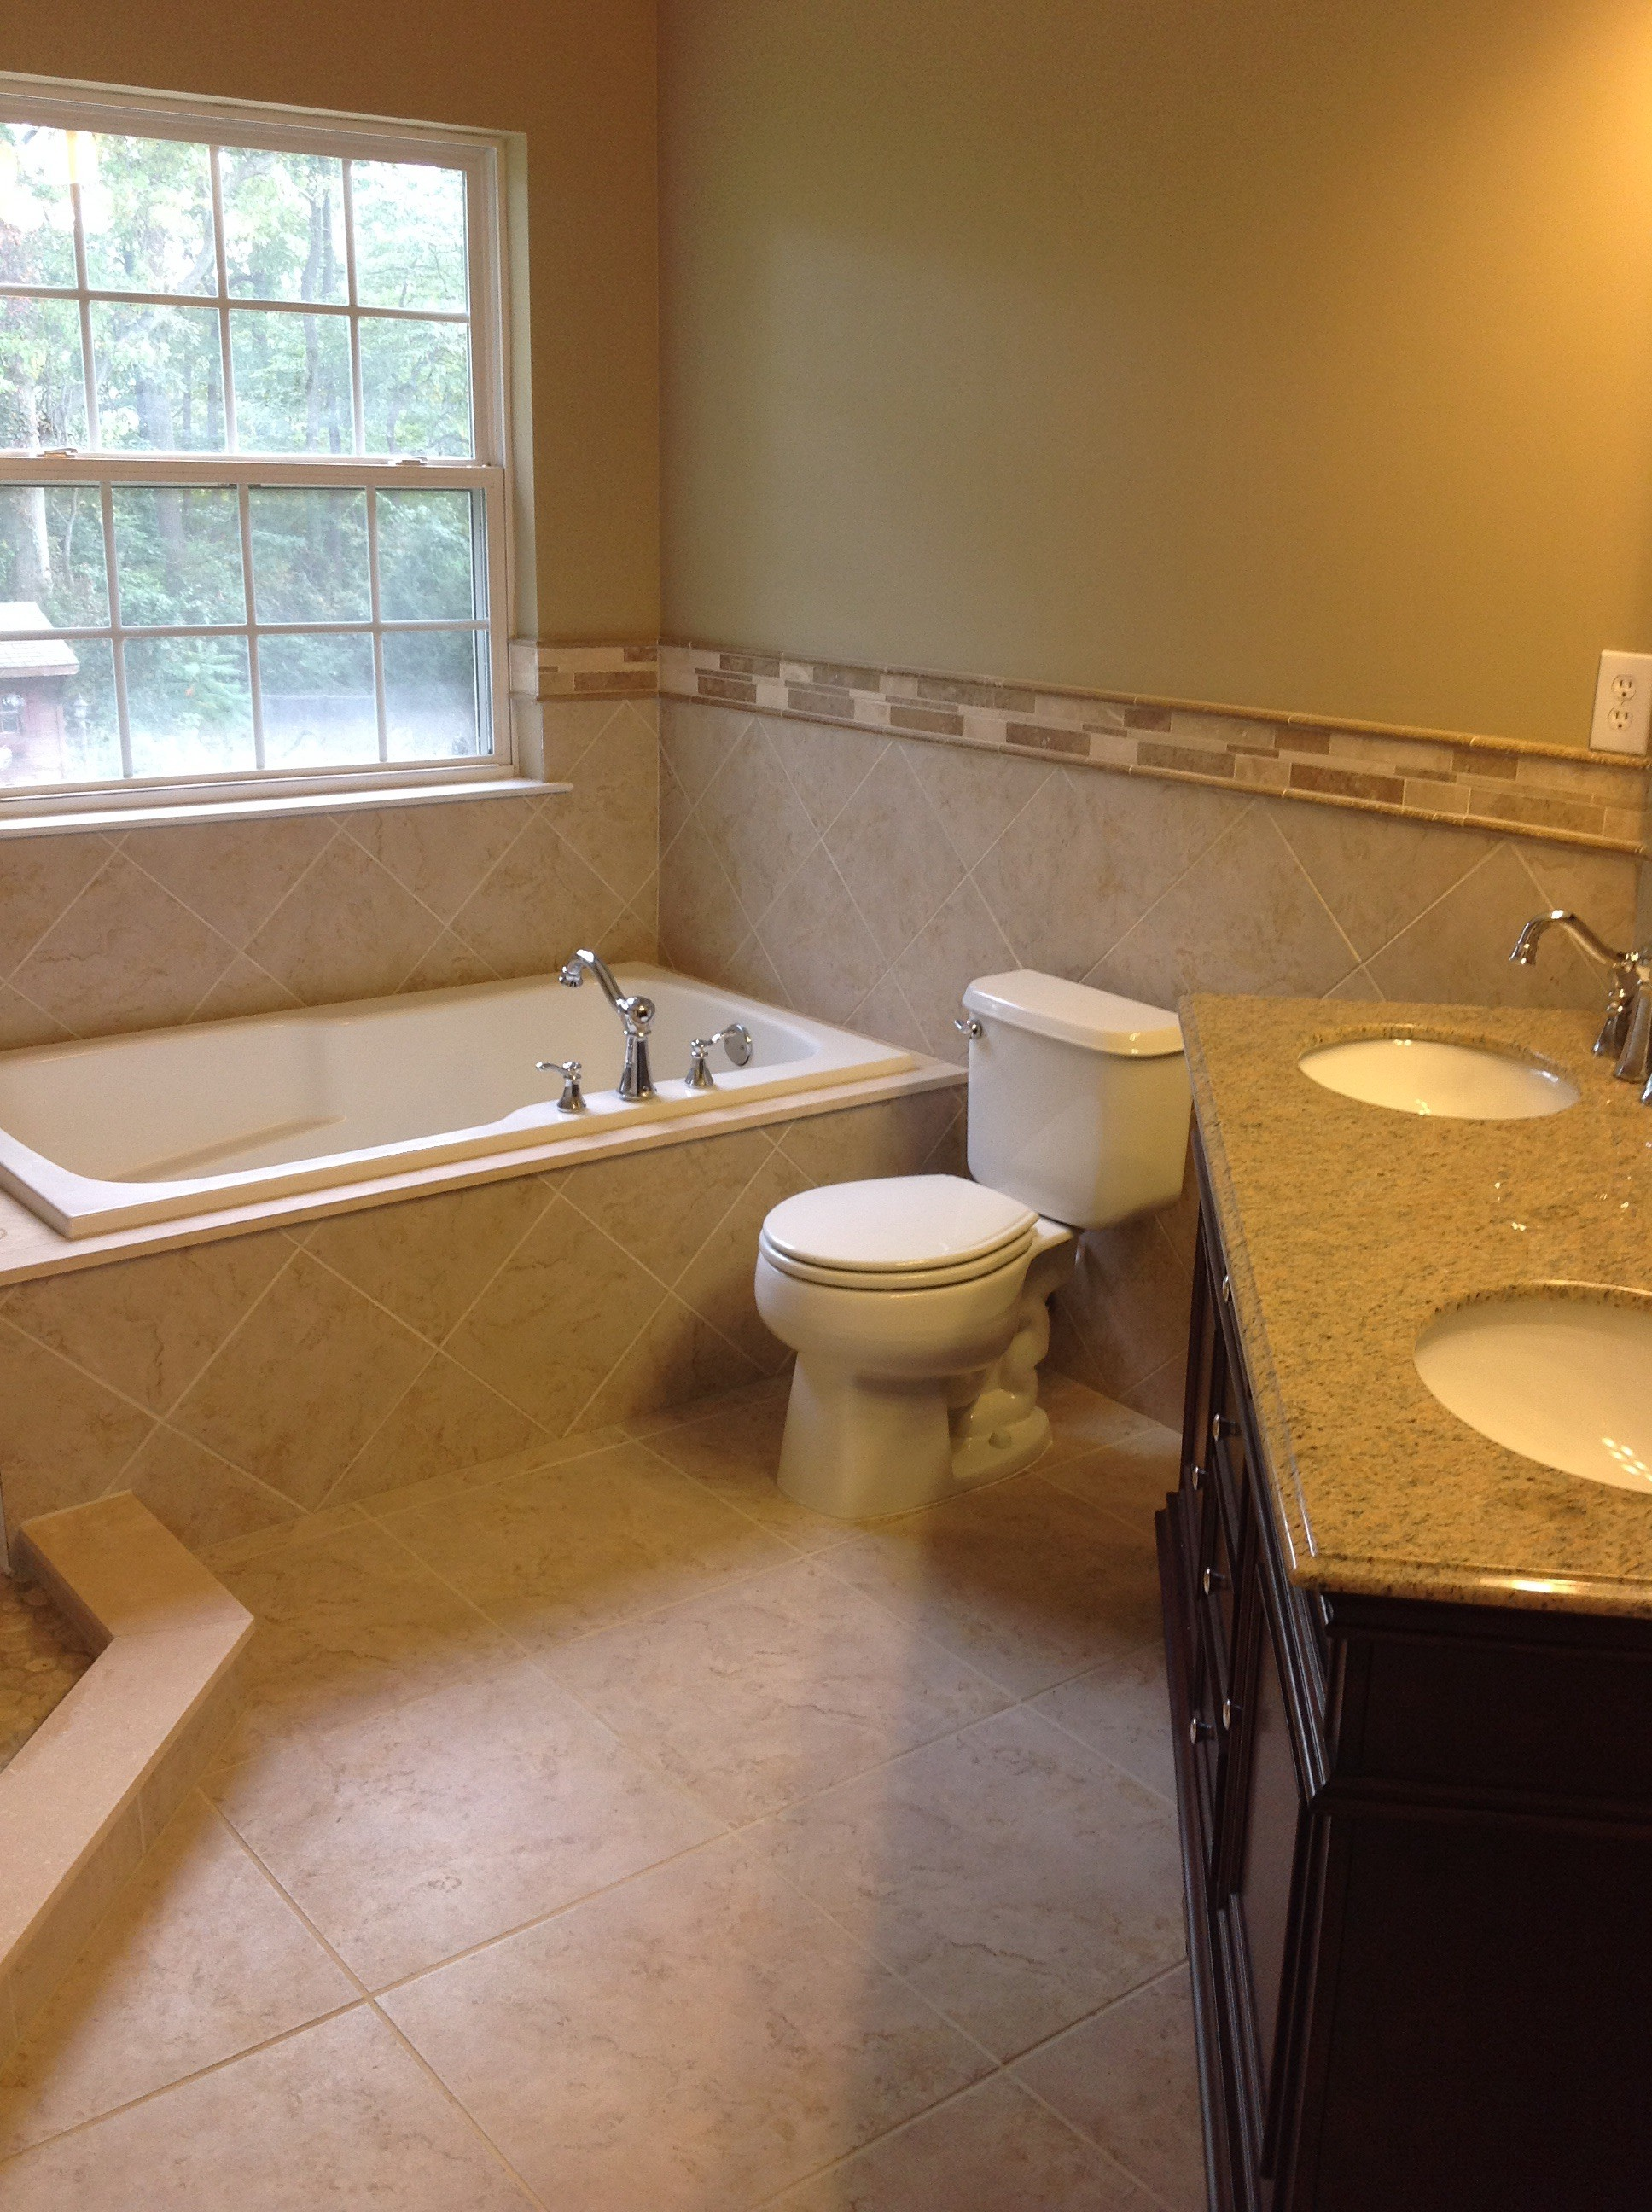 Bath Remodel In West Deptford Located In South Jersey